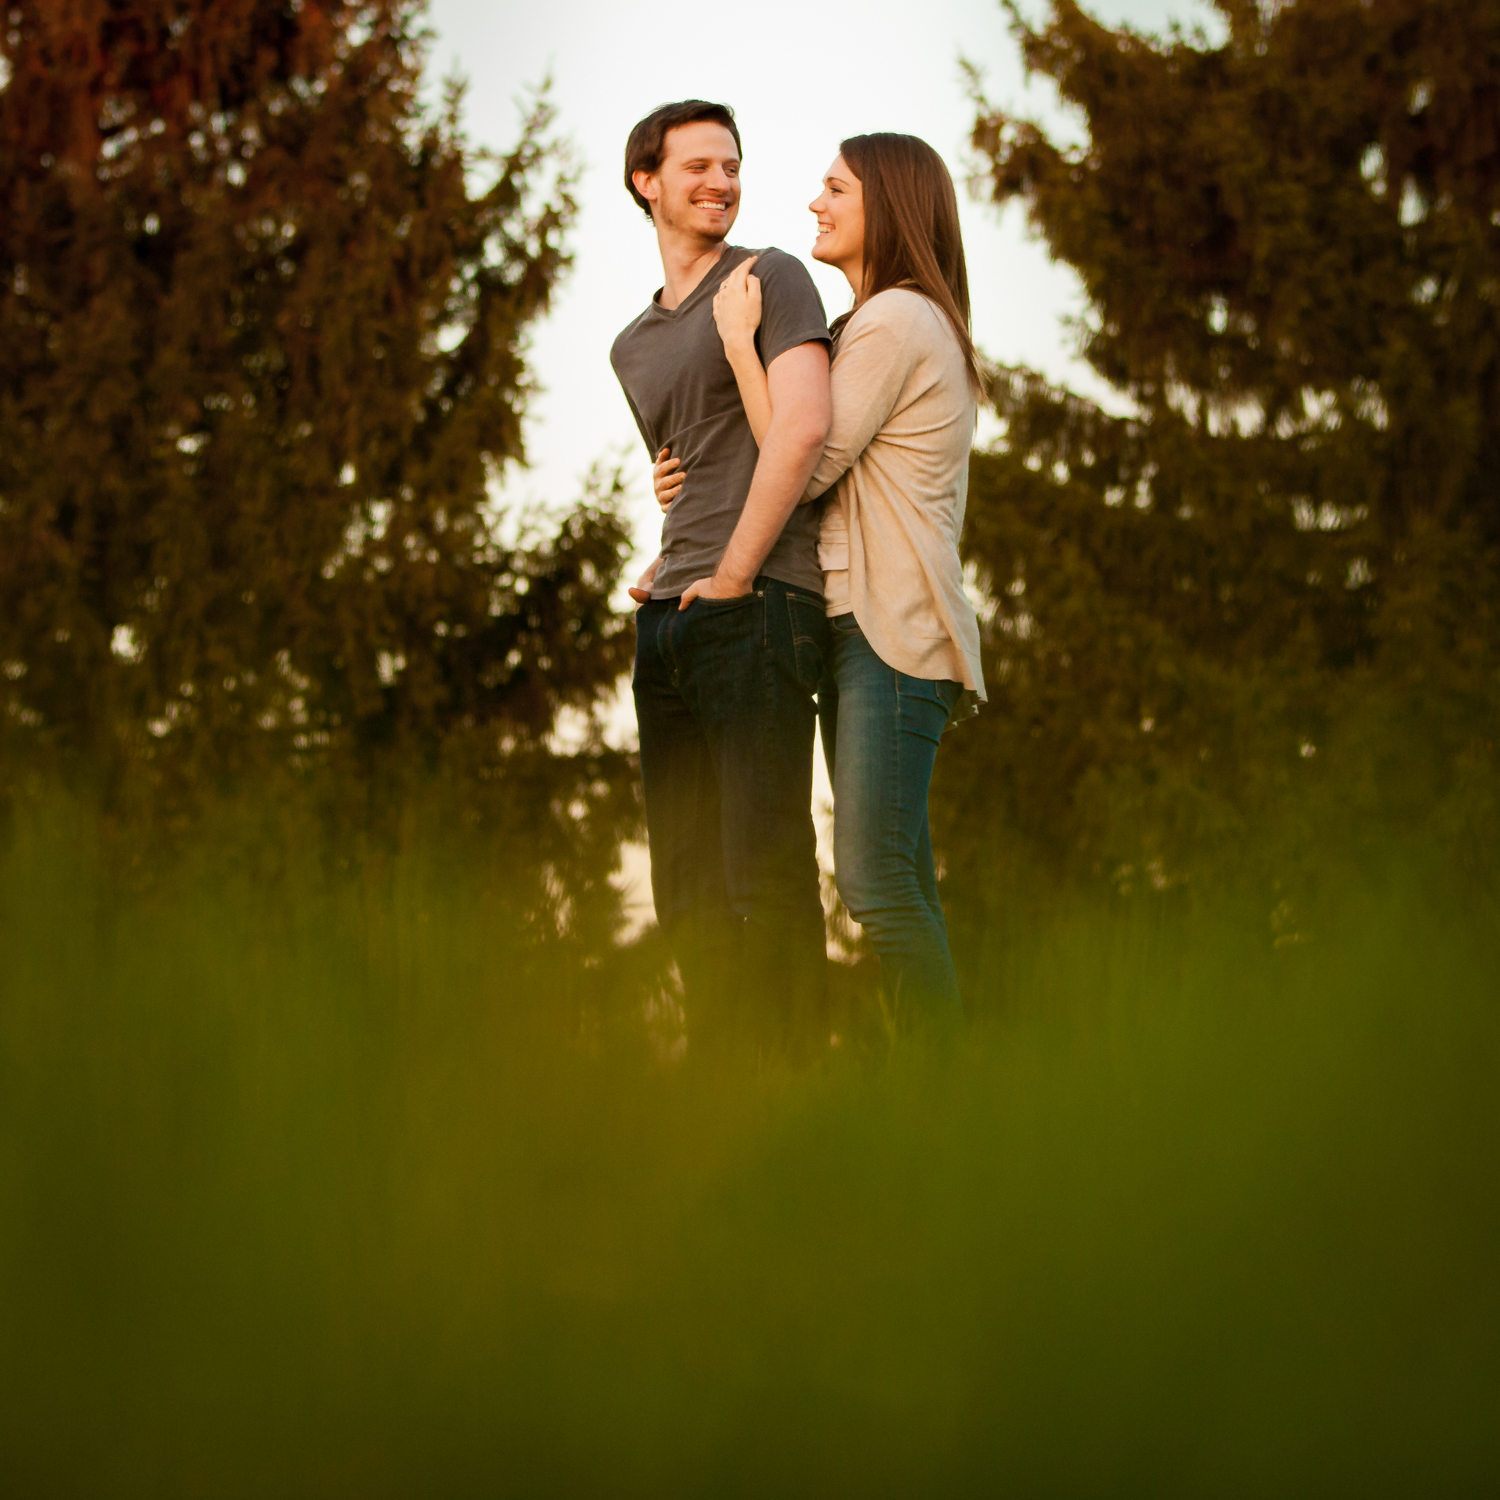 chicago+engagment+photography-28.jpg